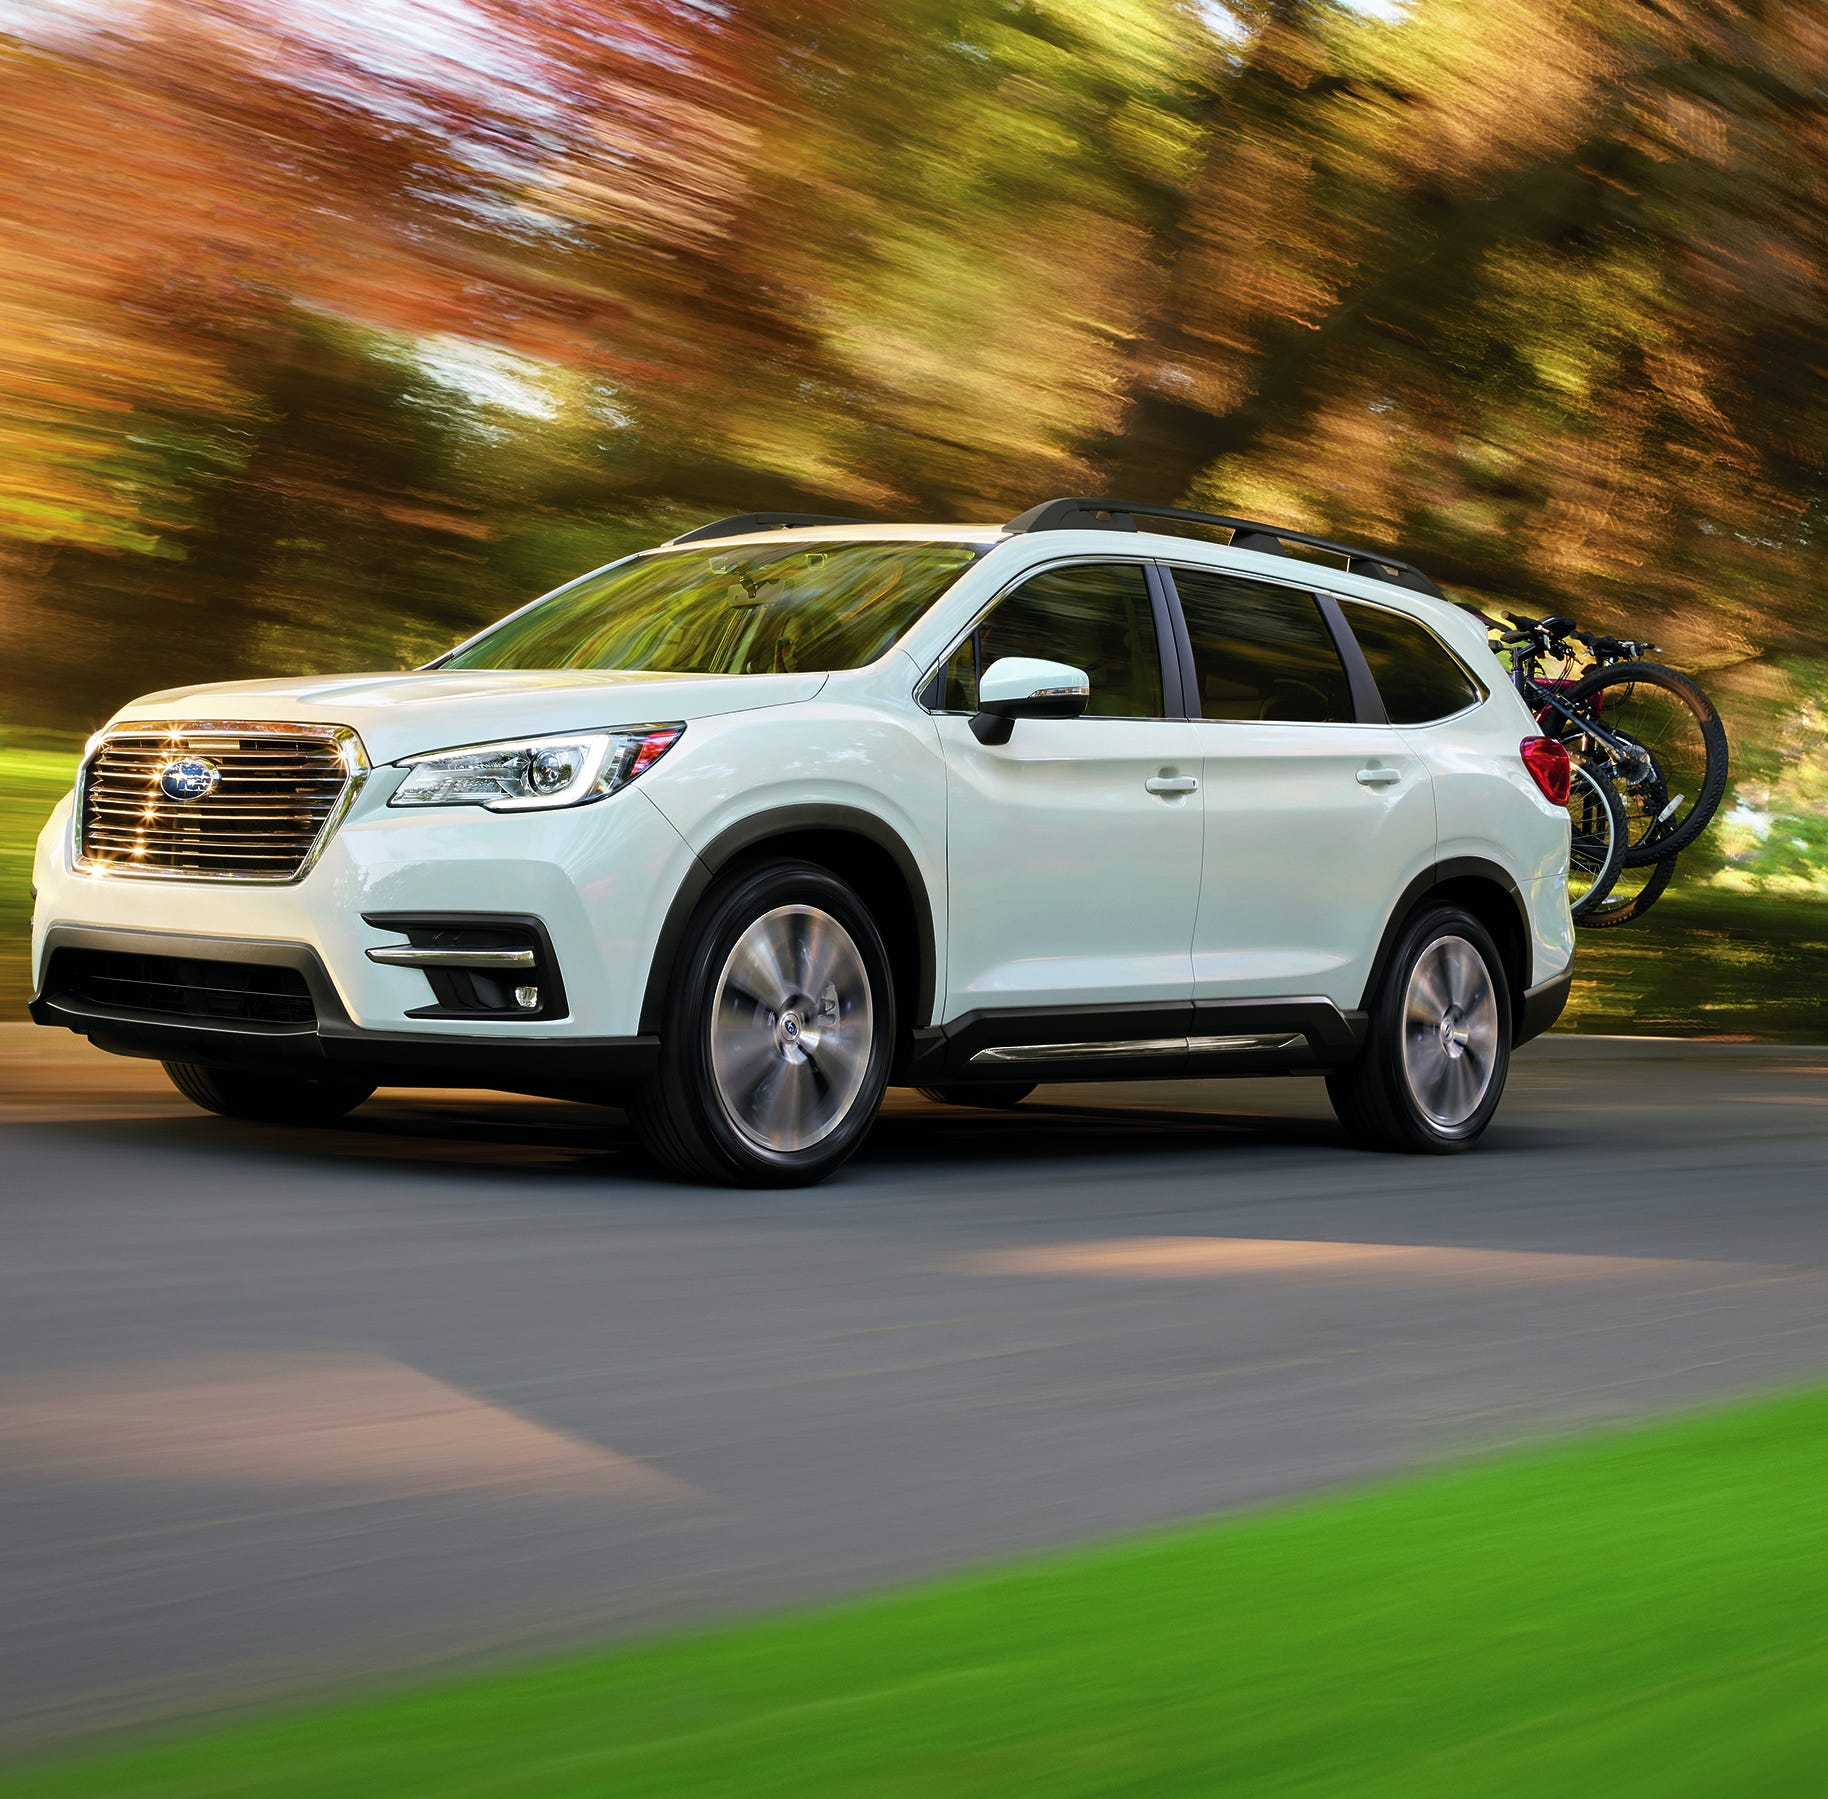 2019 Ascent Touring is a supersized Subaru